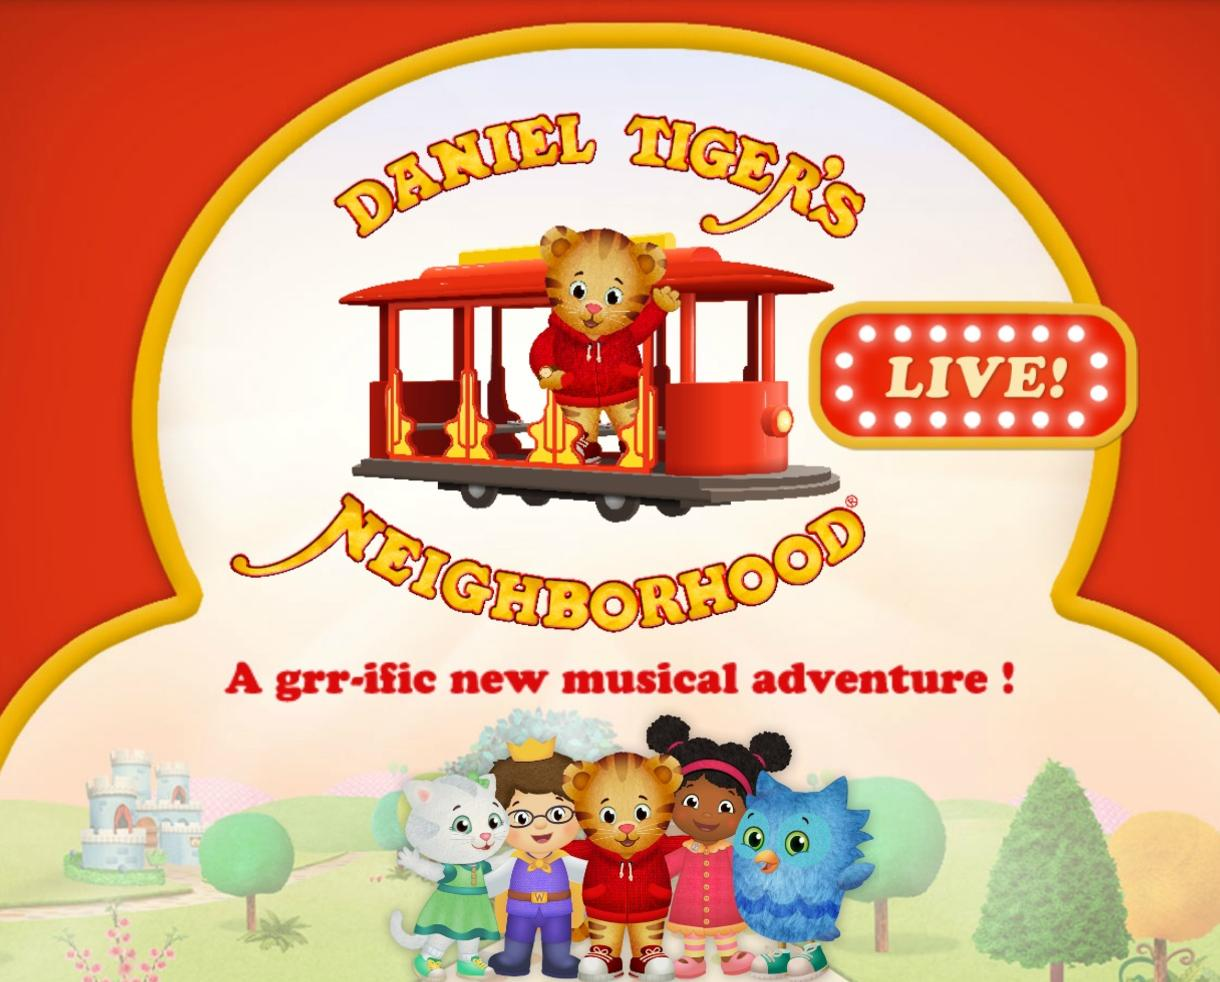 $49.06 for Daniel Tiger's Neighborhood LIVE! on Saturday, Jan. 14th at The Lyric in Baltimore ($65.80 Value!)